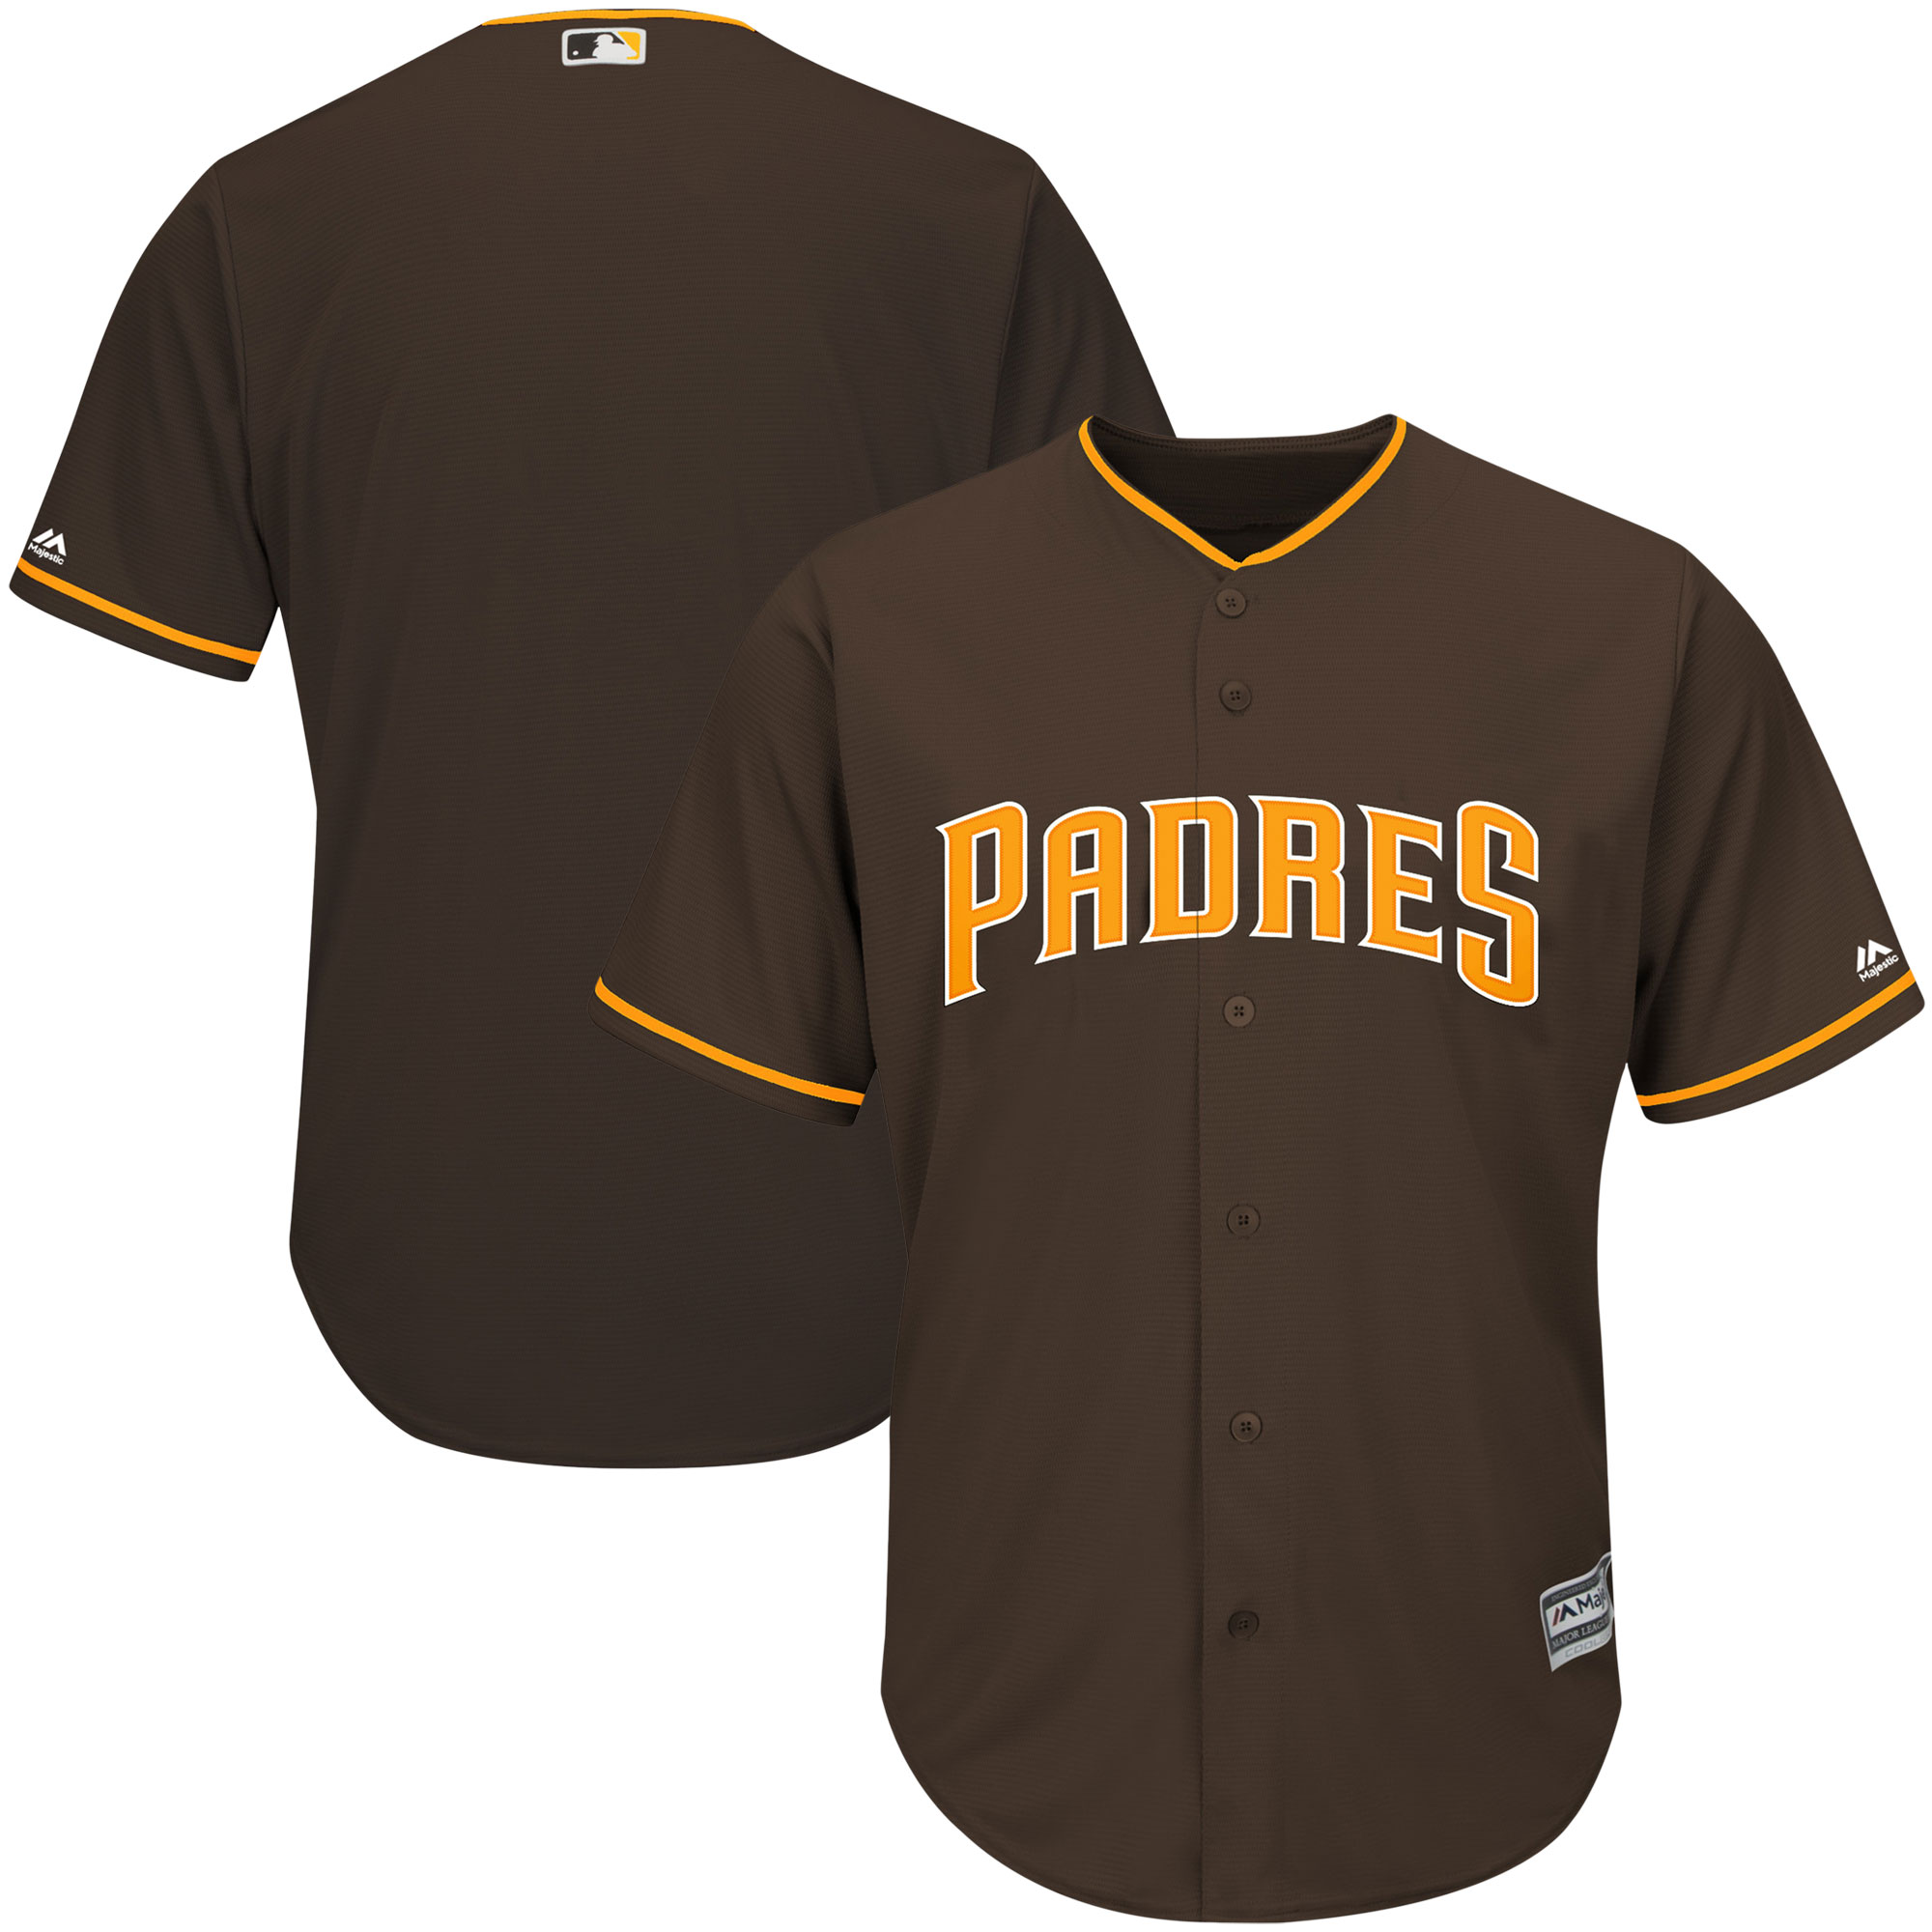 San Diego Padres Majestic Youth Offical Cool Base Jersey - Brown